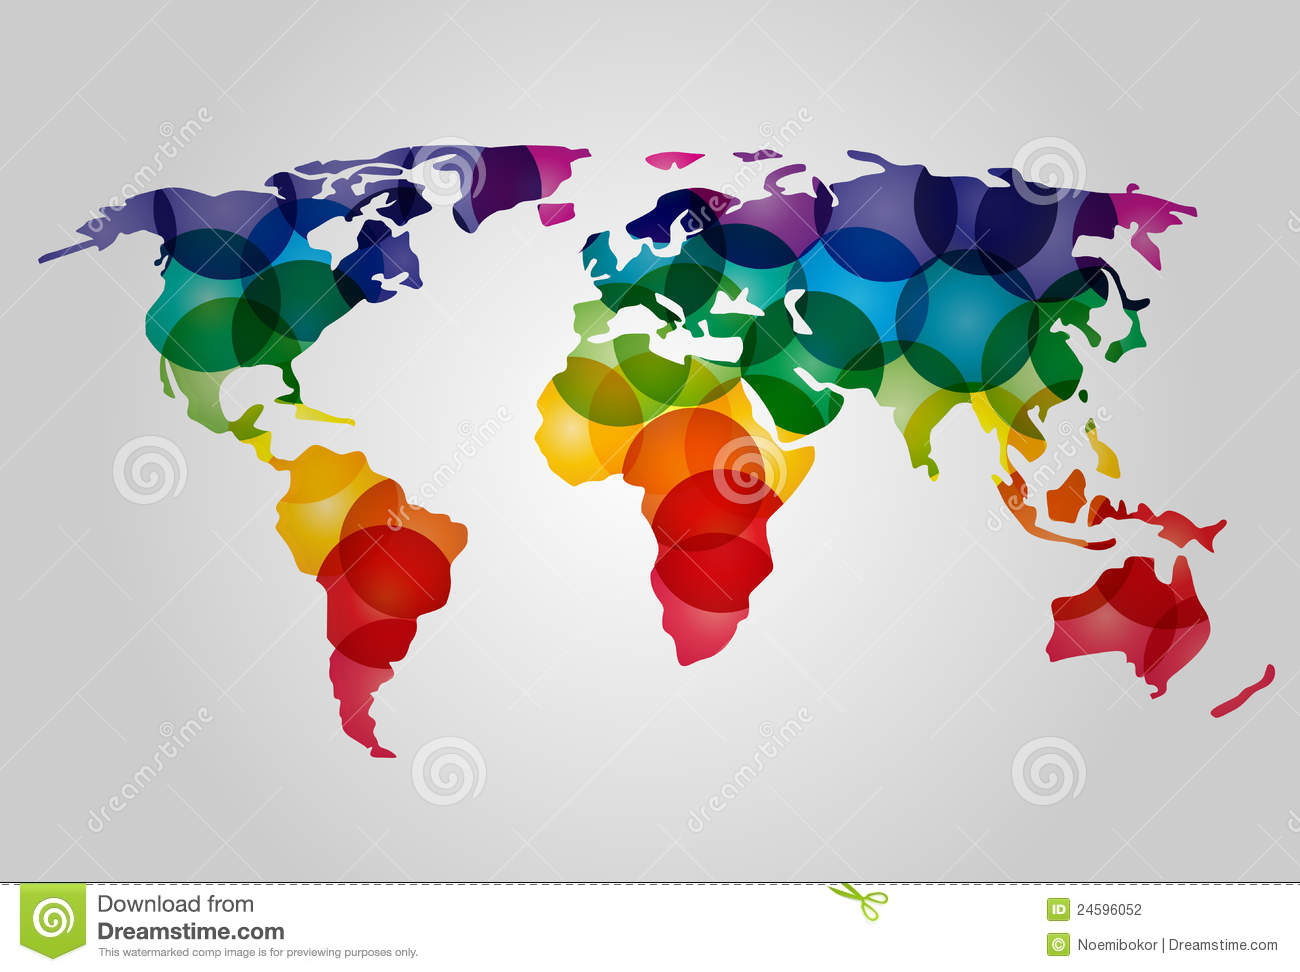 Marvelous Abstract Colorful World Map